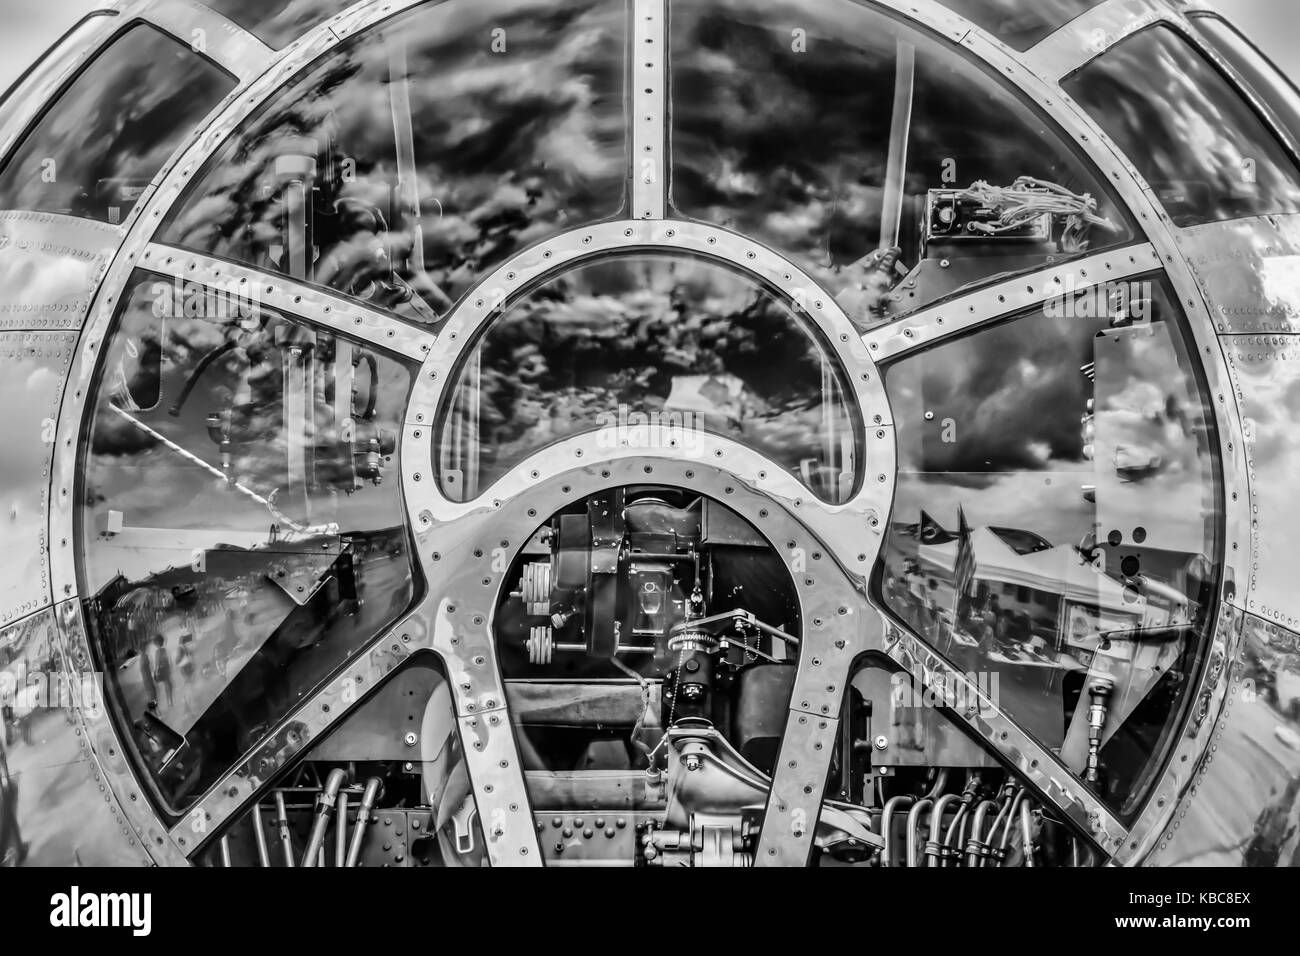 The sky reflecting off the front of a World War Two bomber's cockpit. - Stock Image